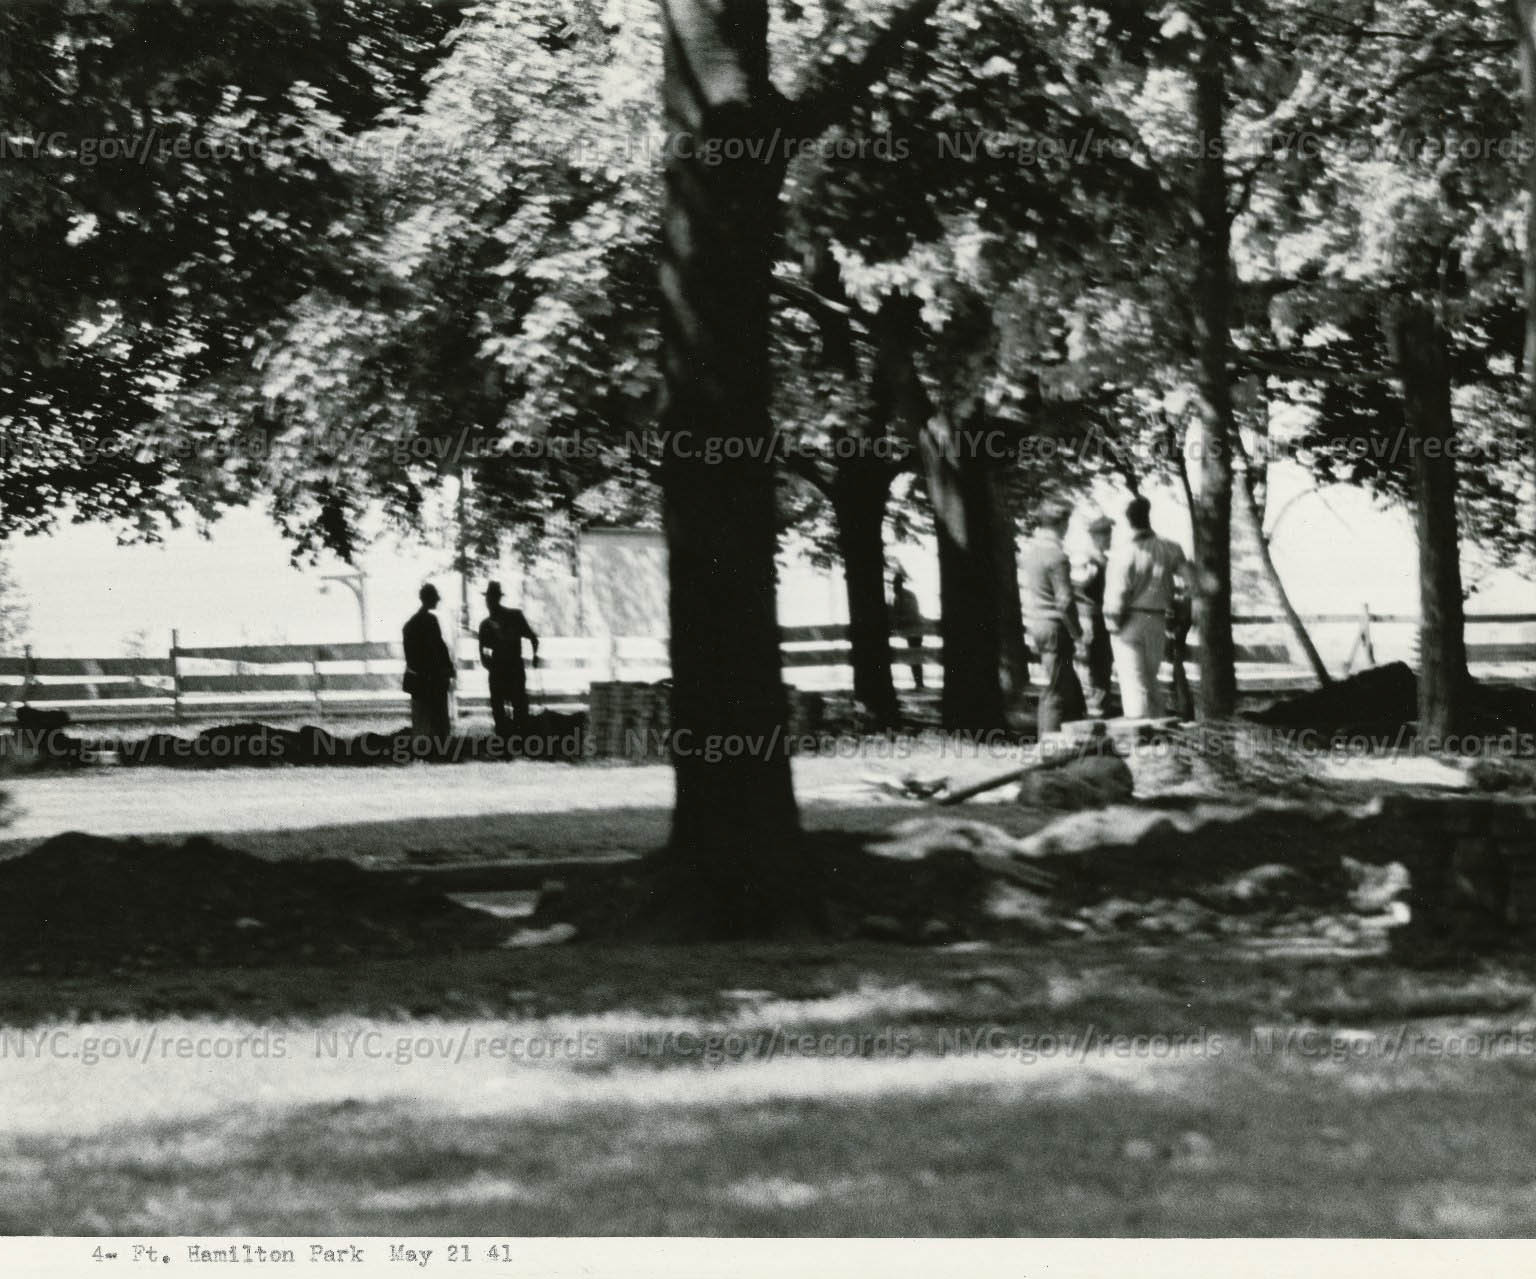 Two views of workers amidst trees in Fort Hamilton Park, Brooklyn